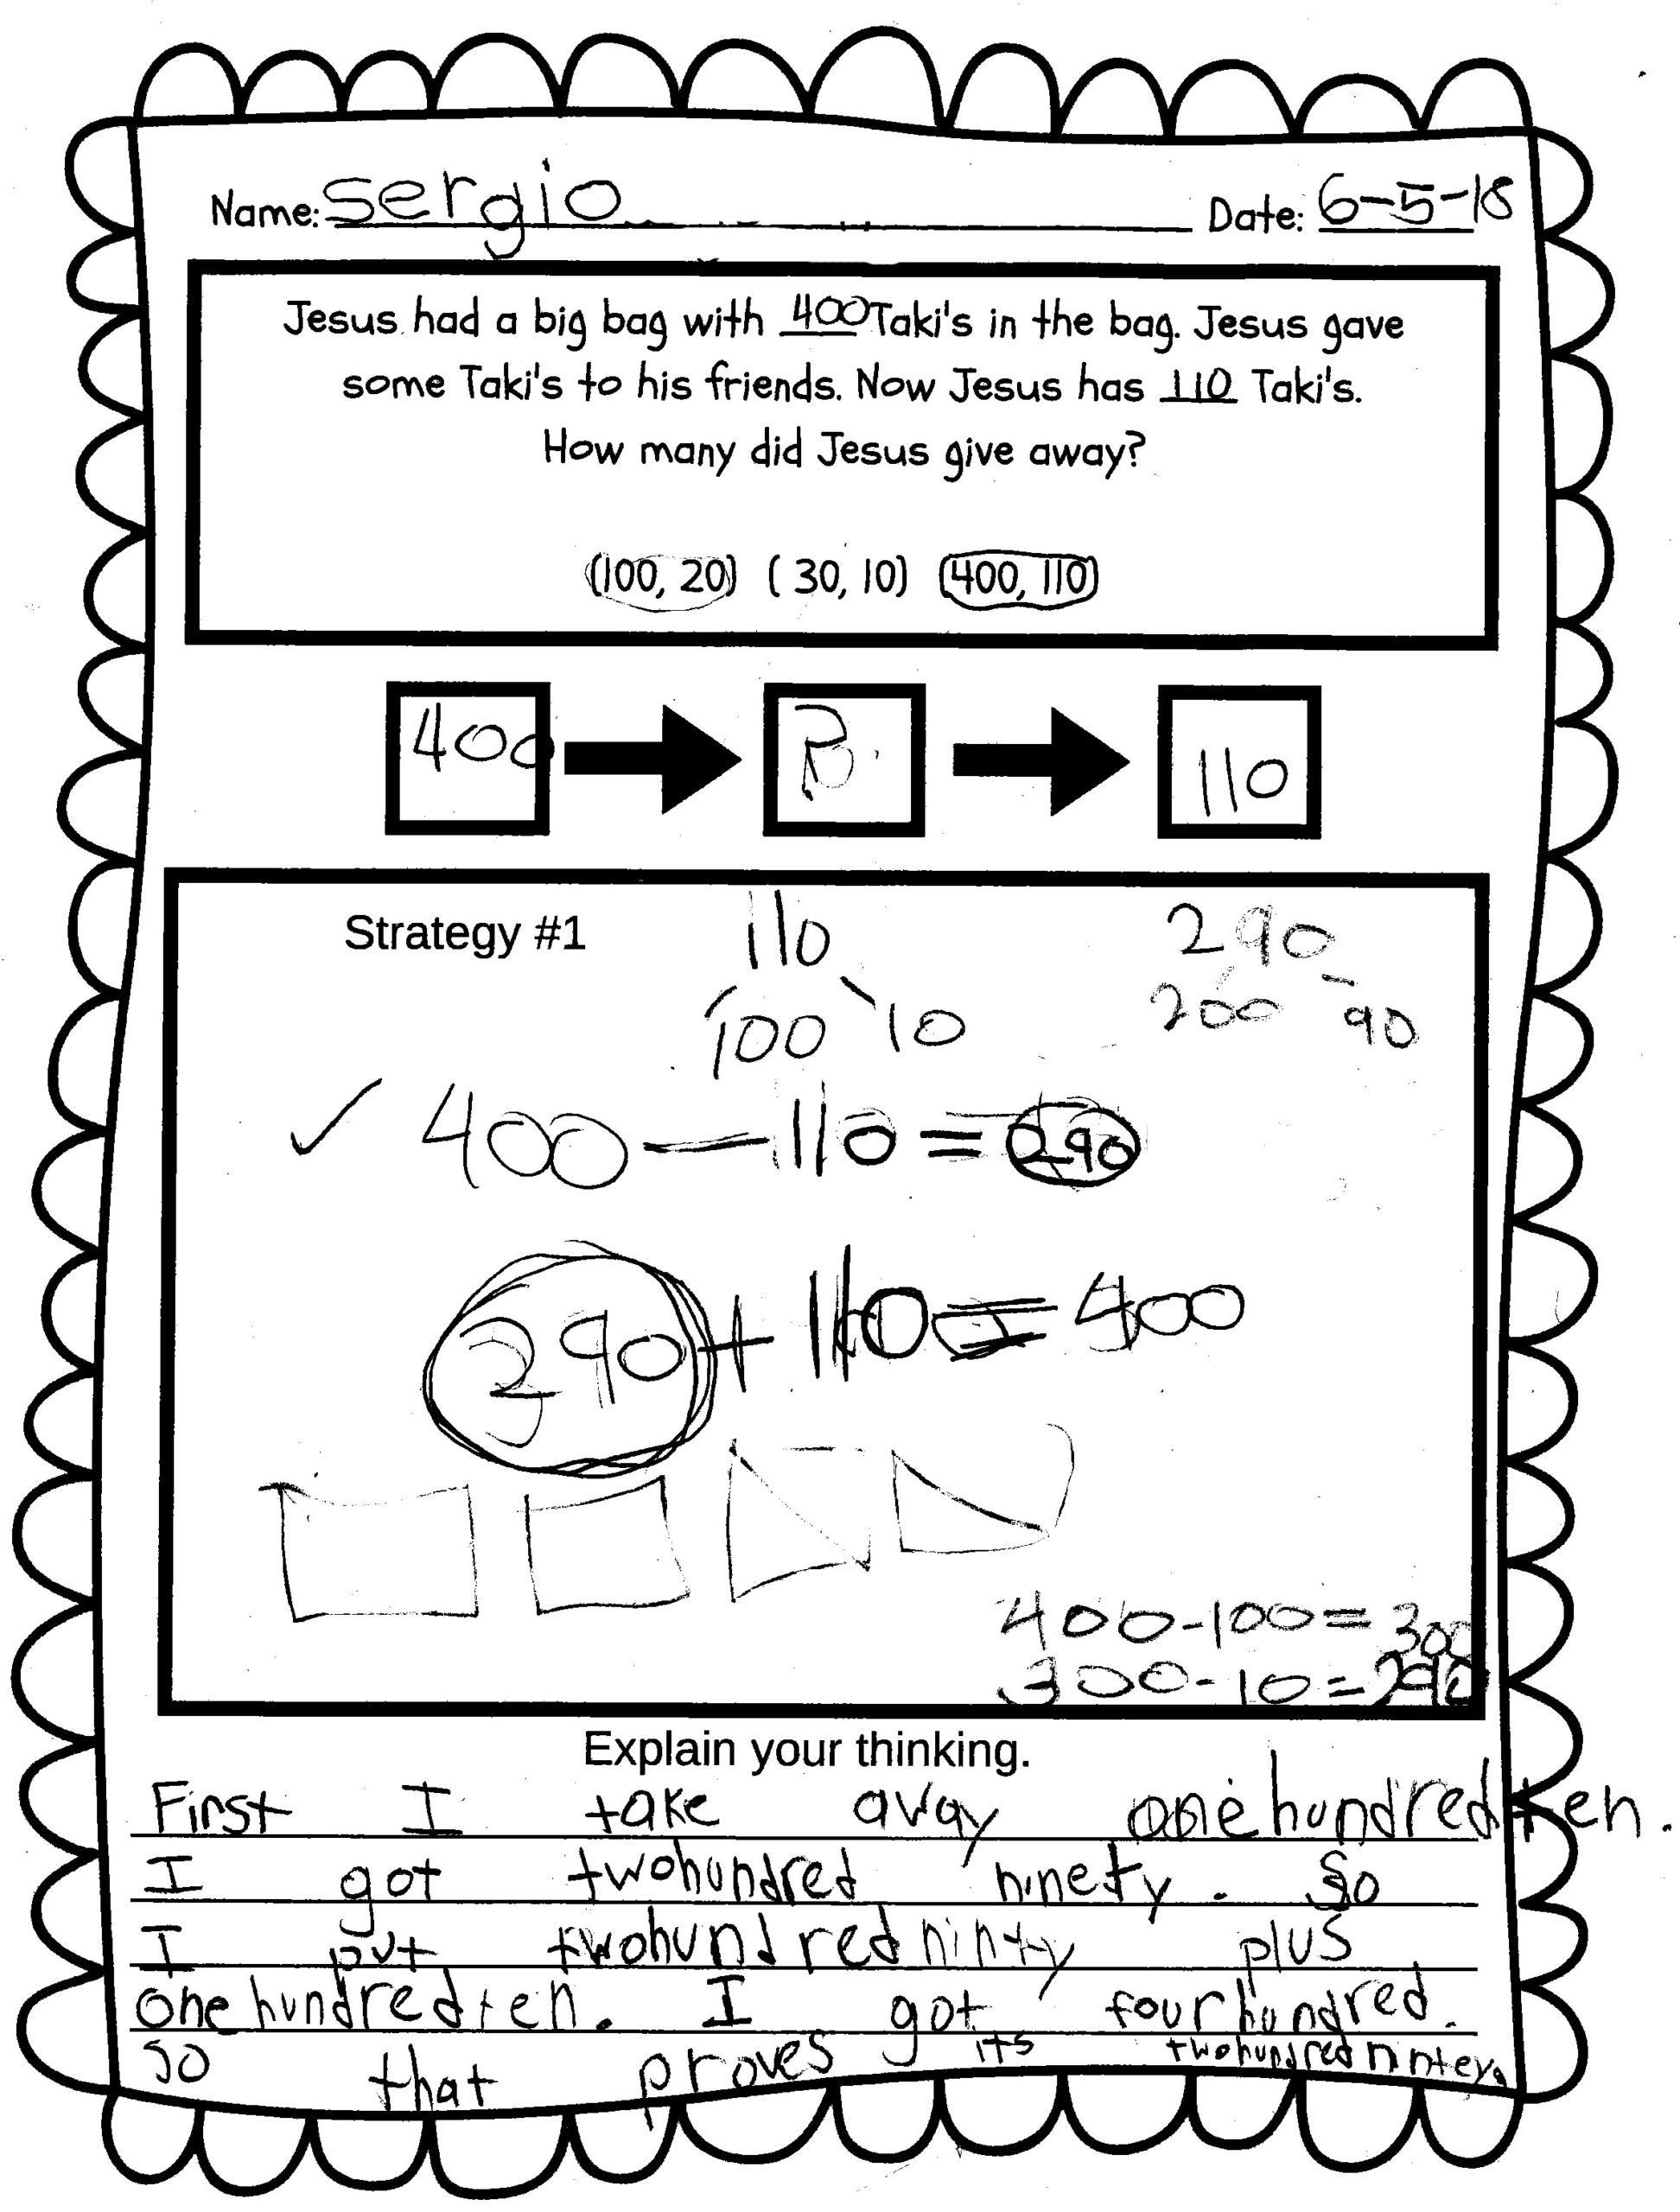 Classifying Quadrilaterals Worksheet Answers Worksheet Close Reading Annotation Symbols Easy Art Ideas In 2020 Math Worksheets Reading Worksheets Free Math Worksheets